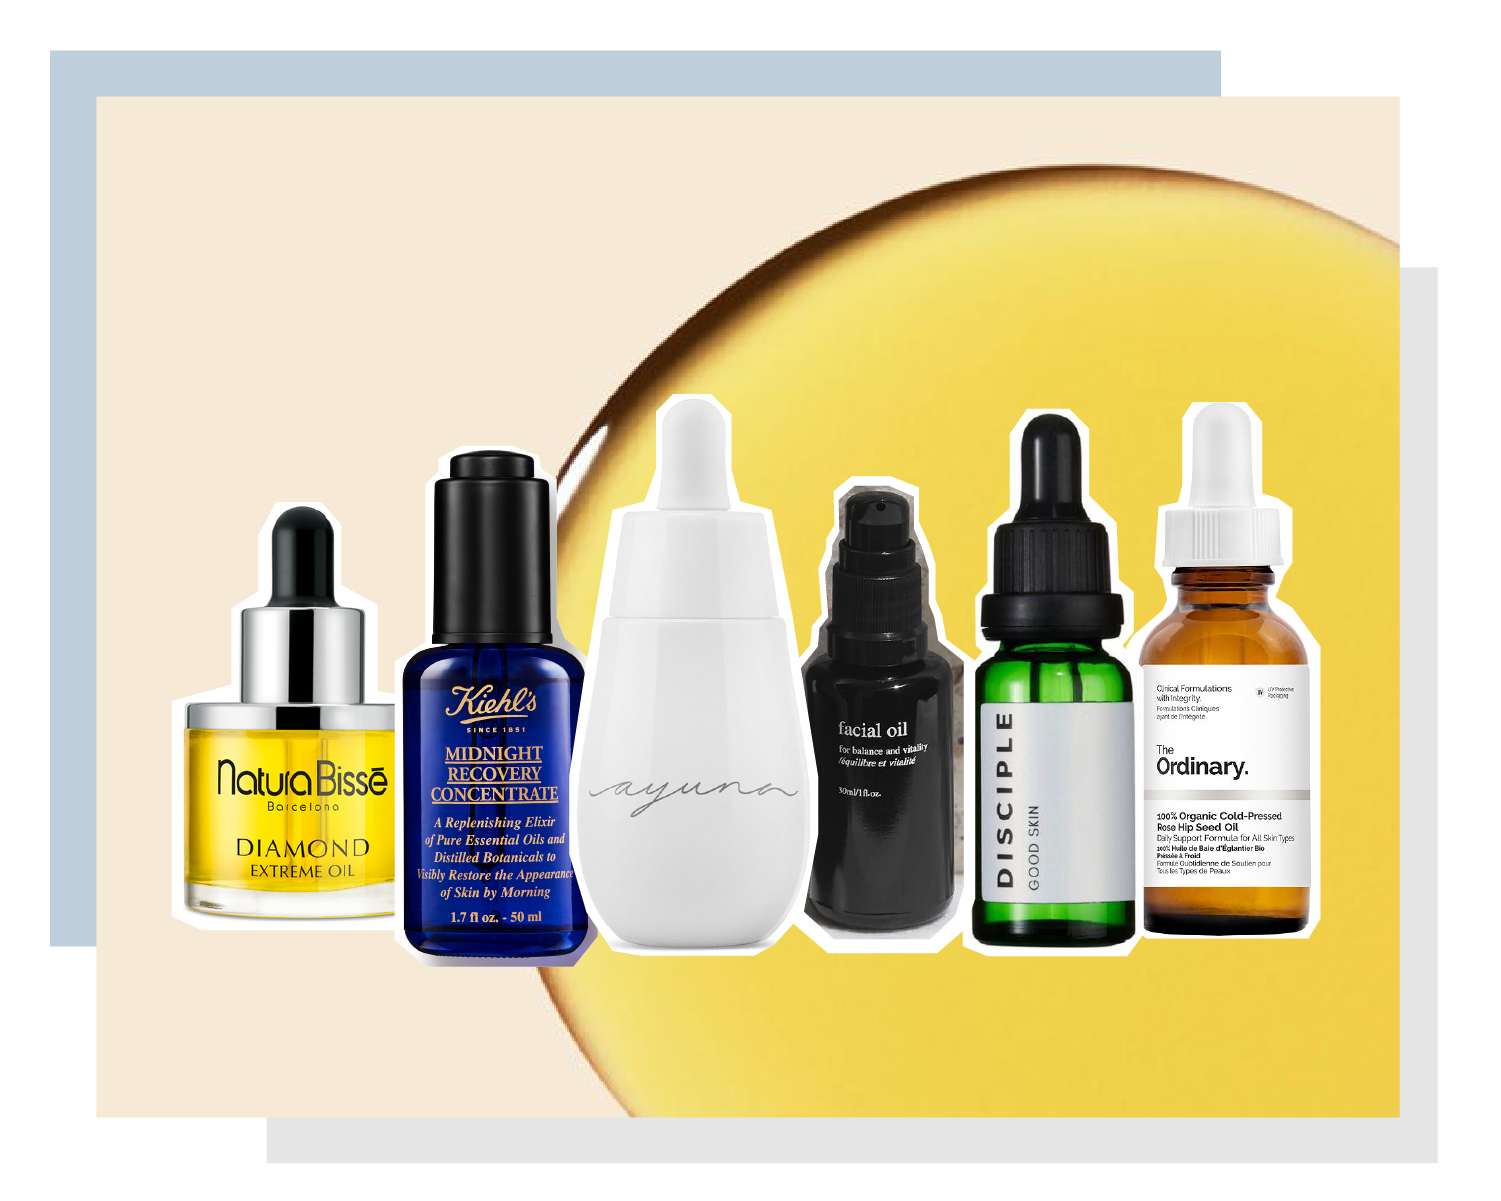 The very best facial oils according to Lion/ne's Skin Mentors